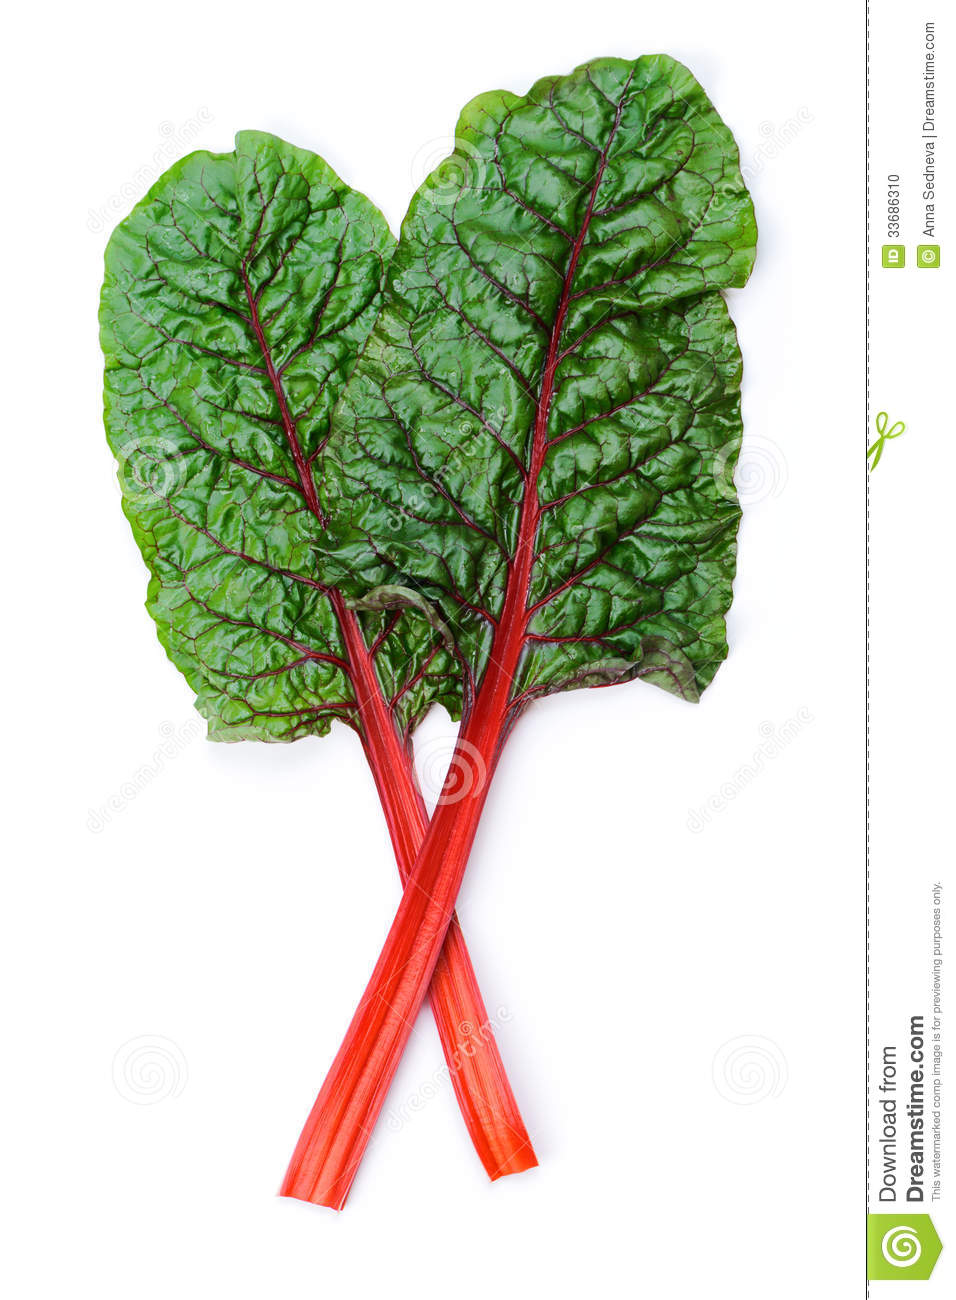 Swiss Chard Stock Photo Image Of Food Fresh Bundle 33686310